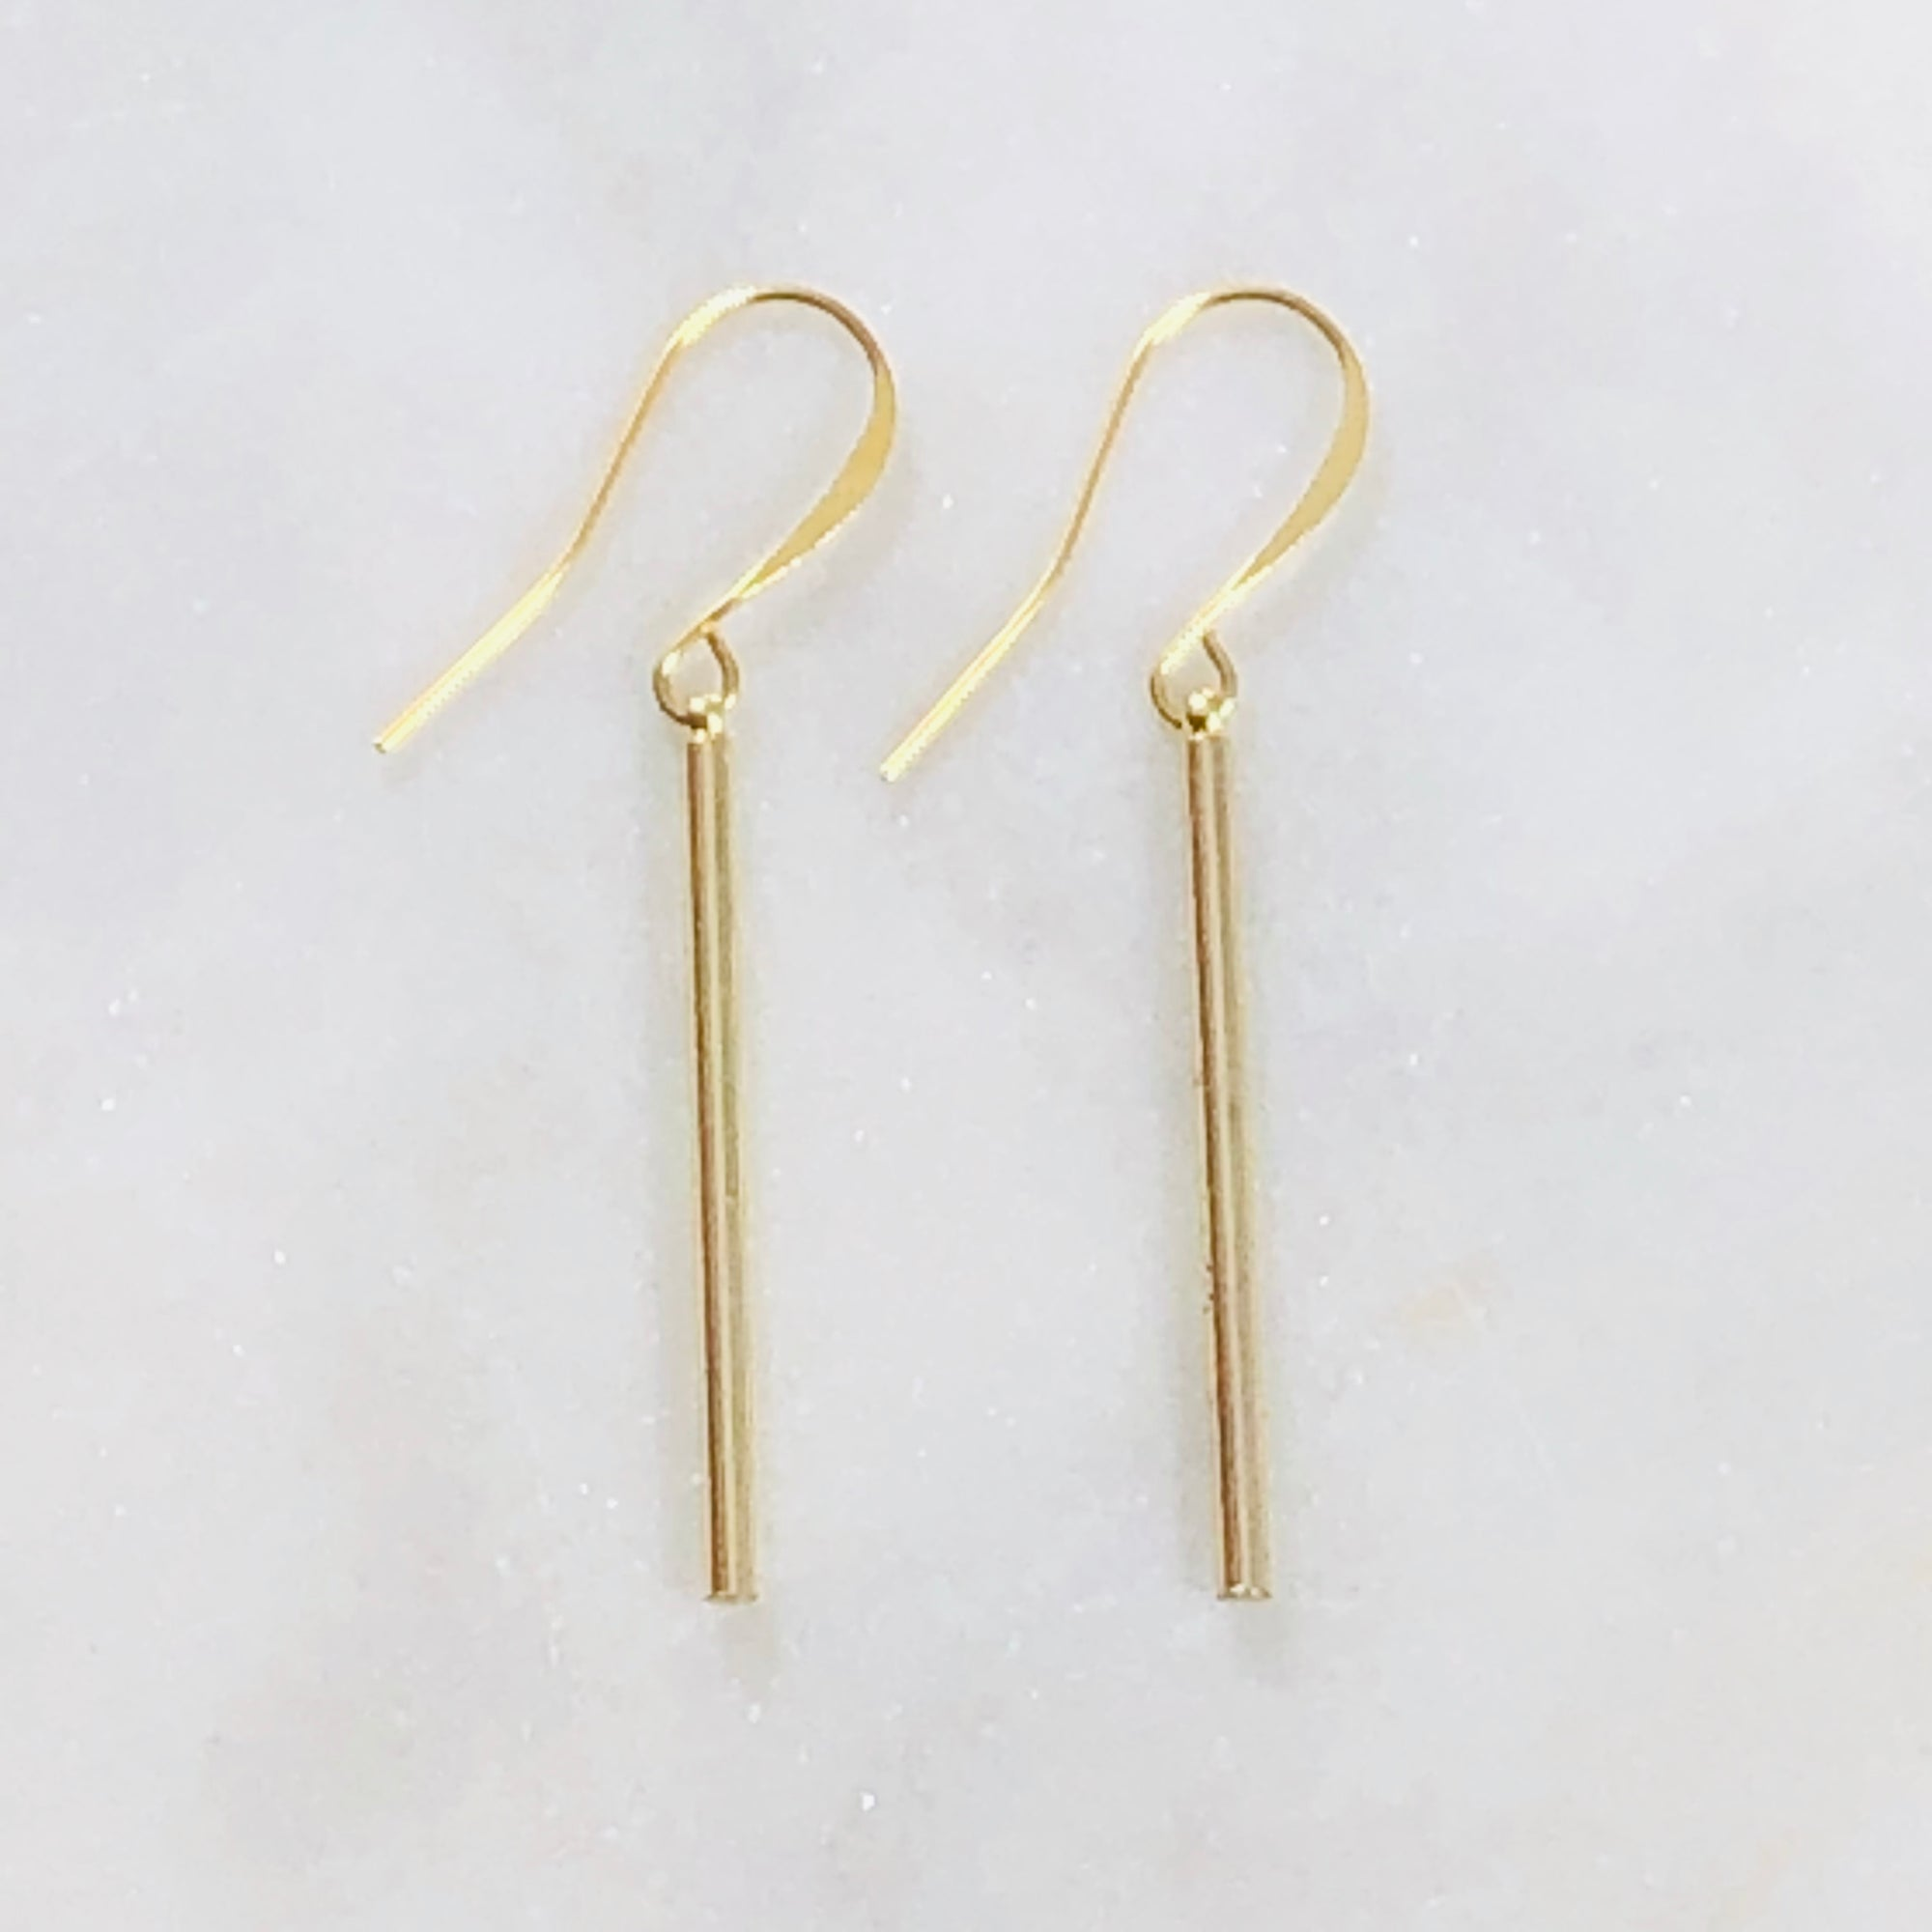 Handmade gold bar earring for a modern minimalist style